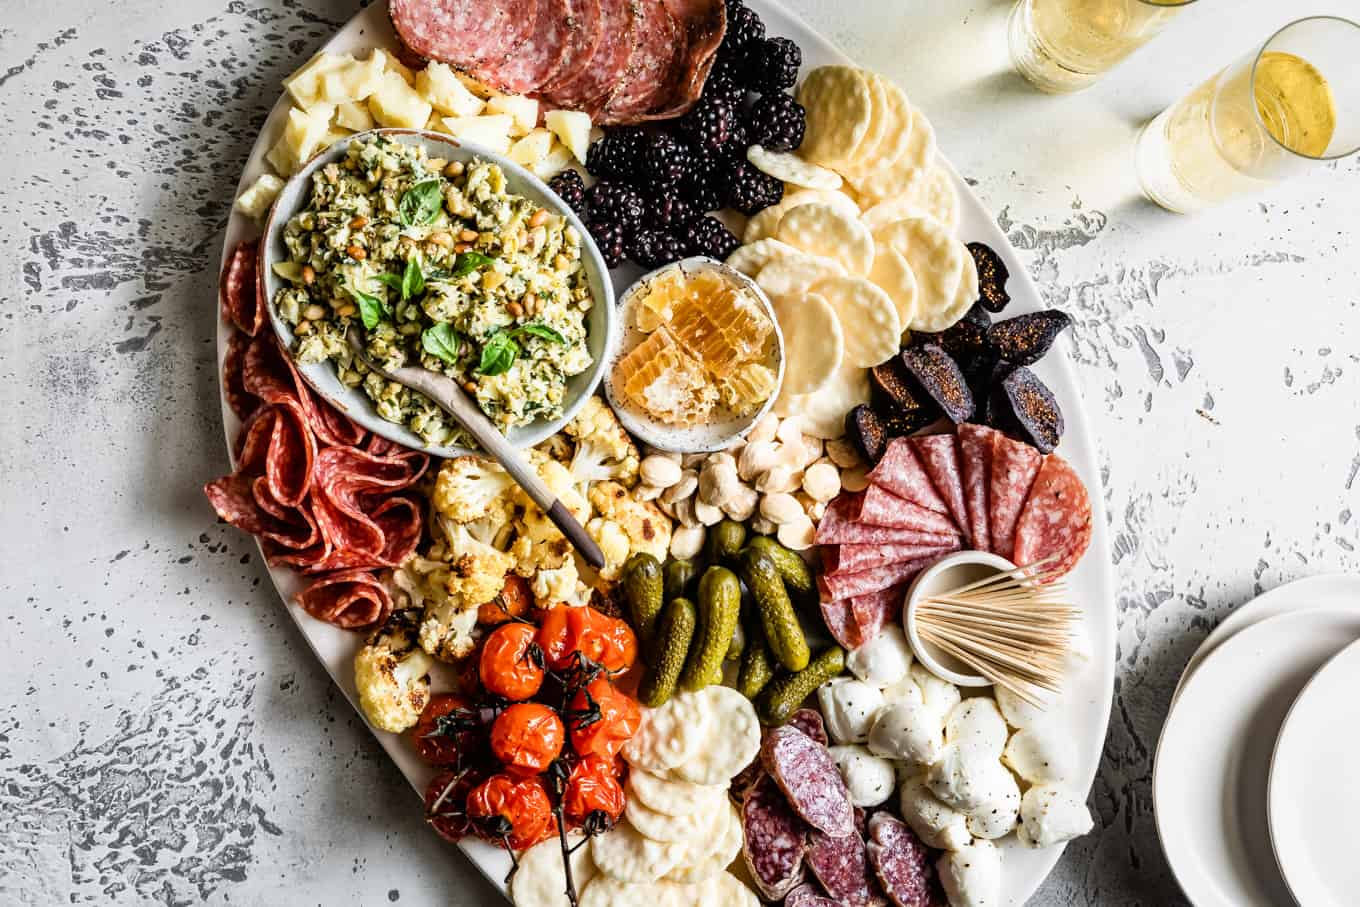 What to put on a Charcuterie Board?